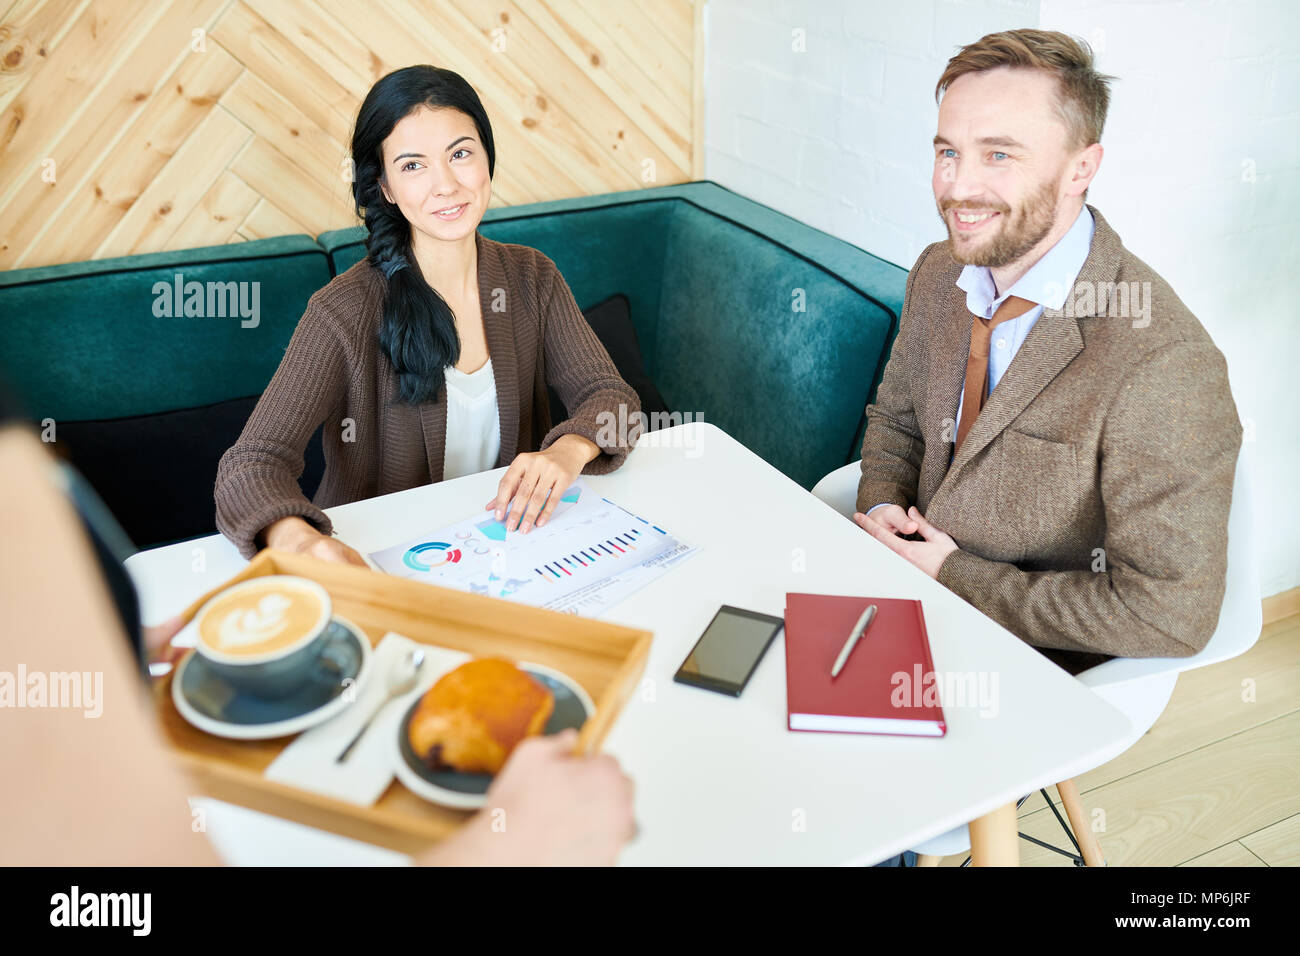 Business People Meeting in Cafe - Stock Image